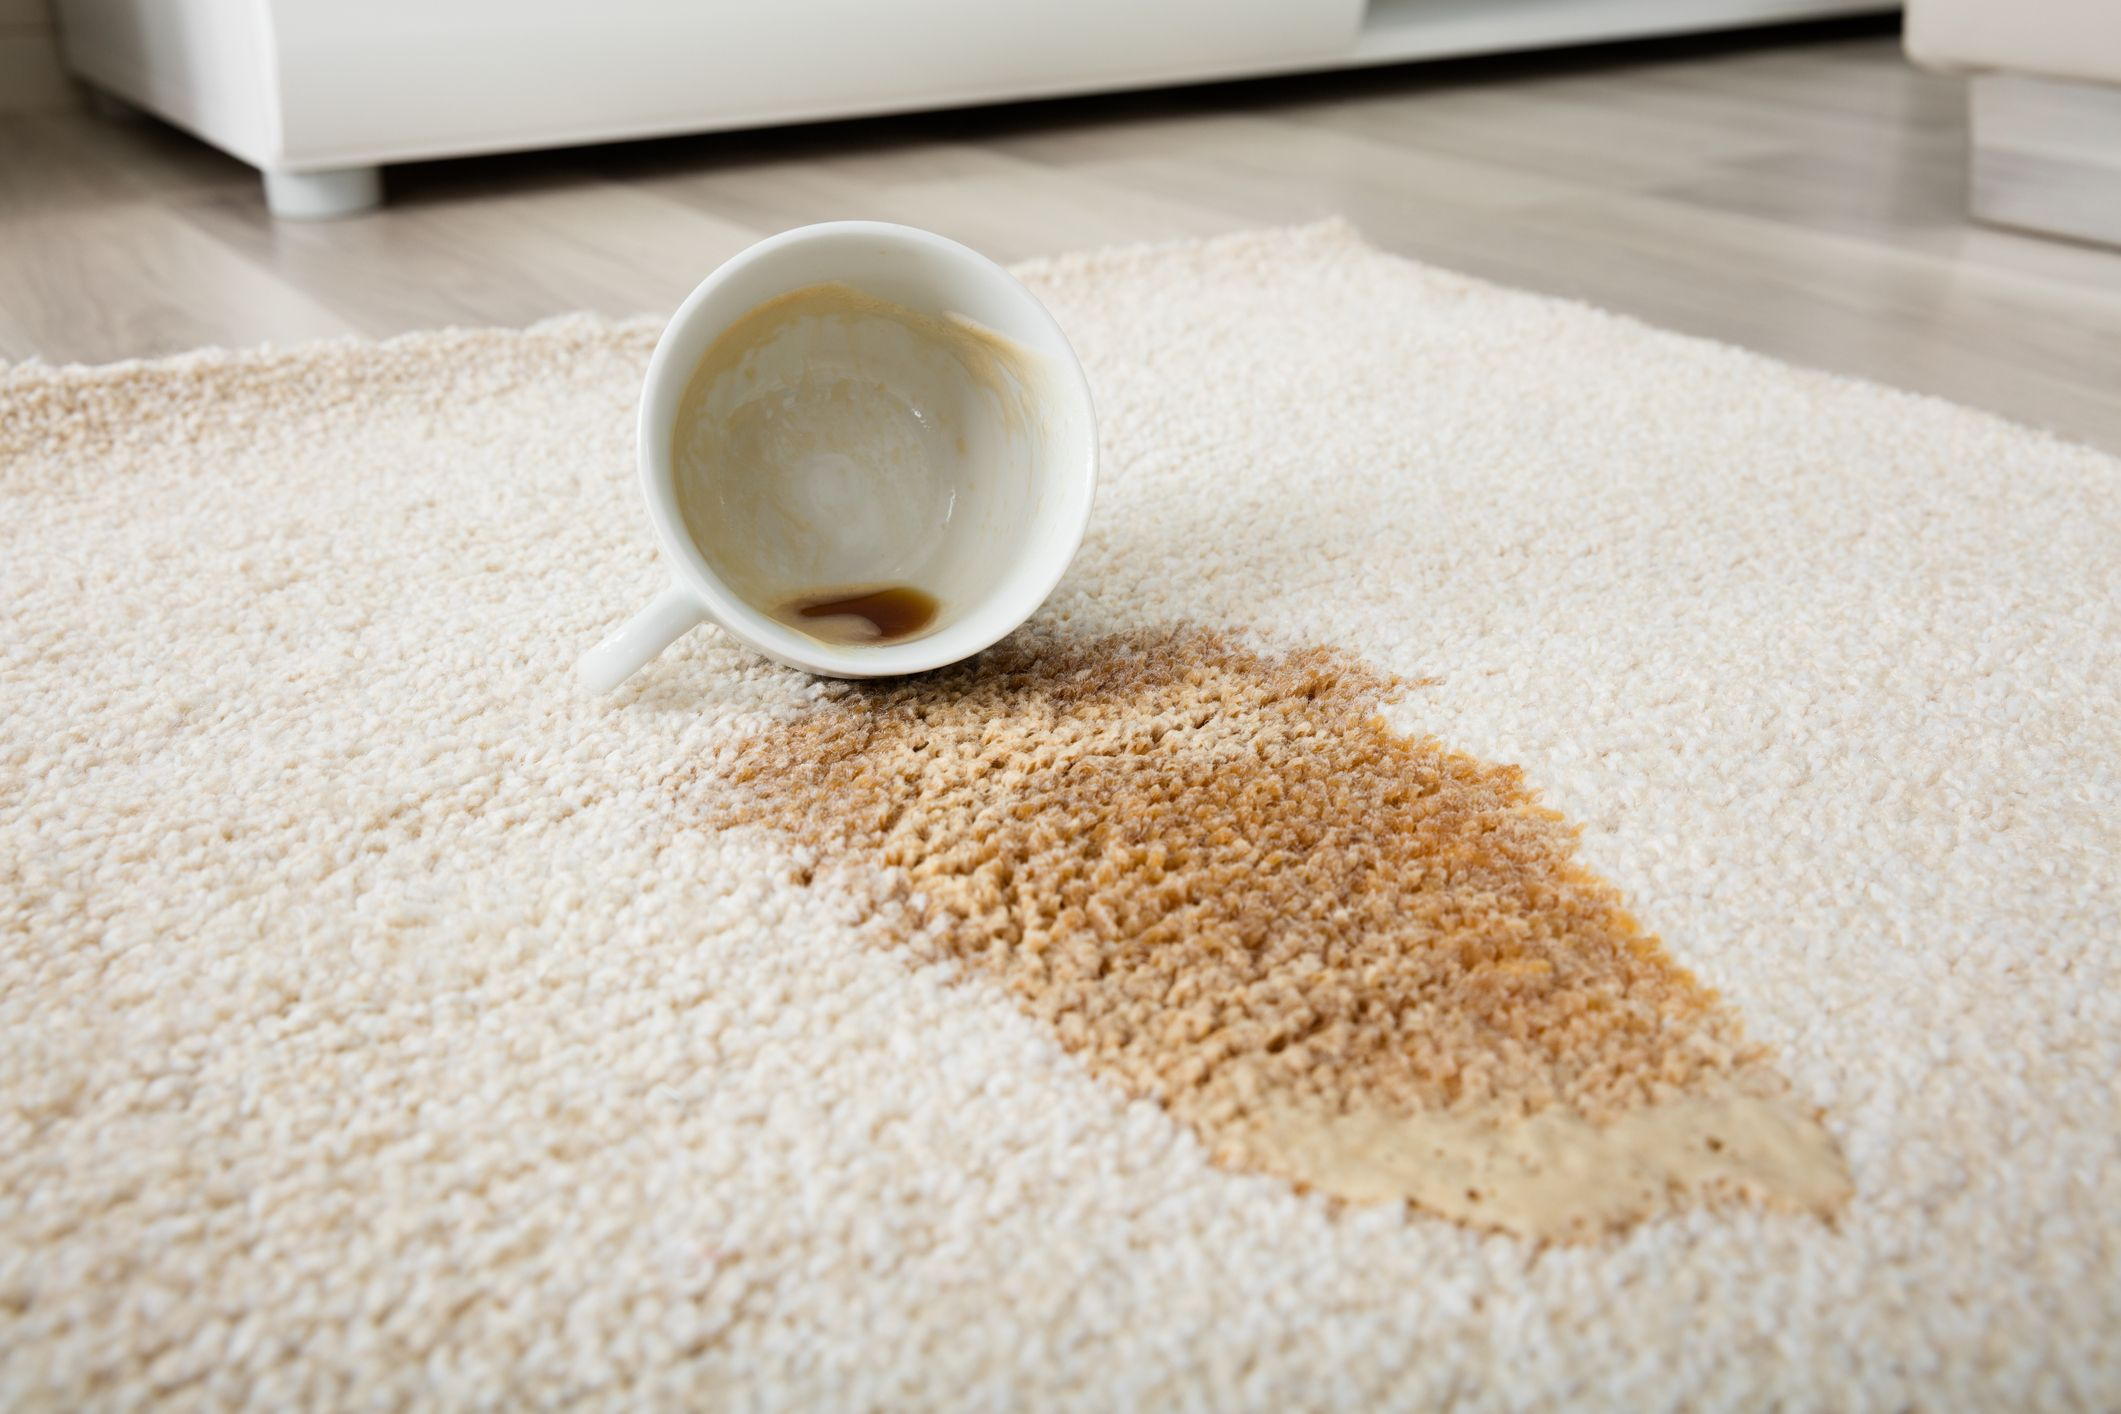 How to Remove Coffee Stains From Carpet